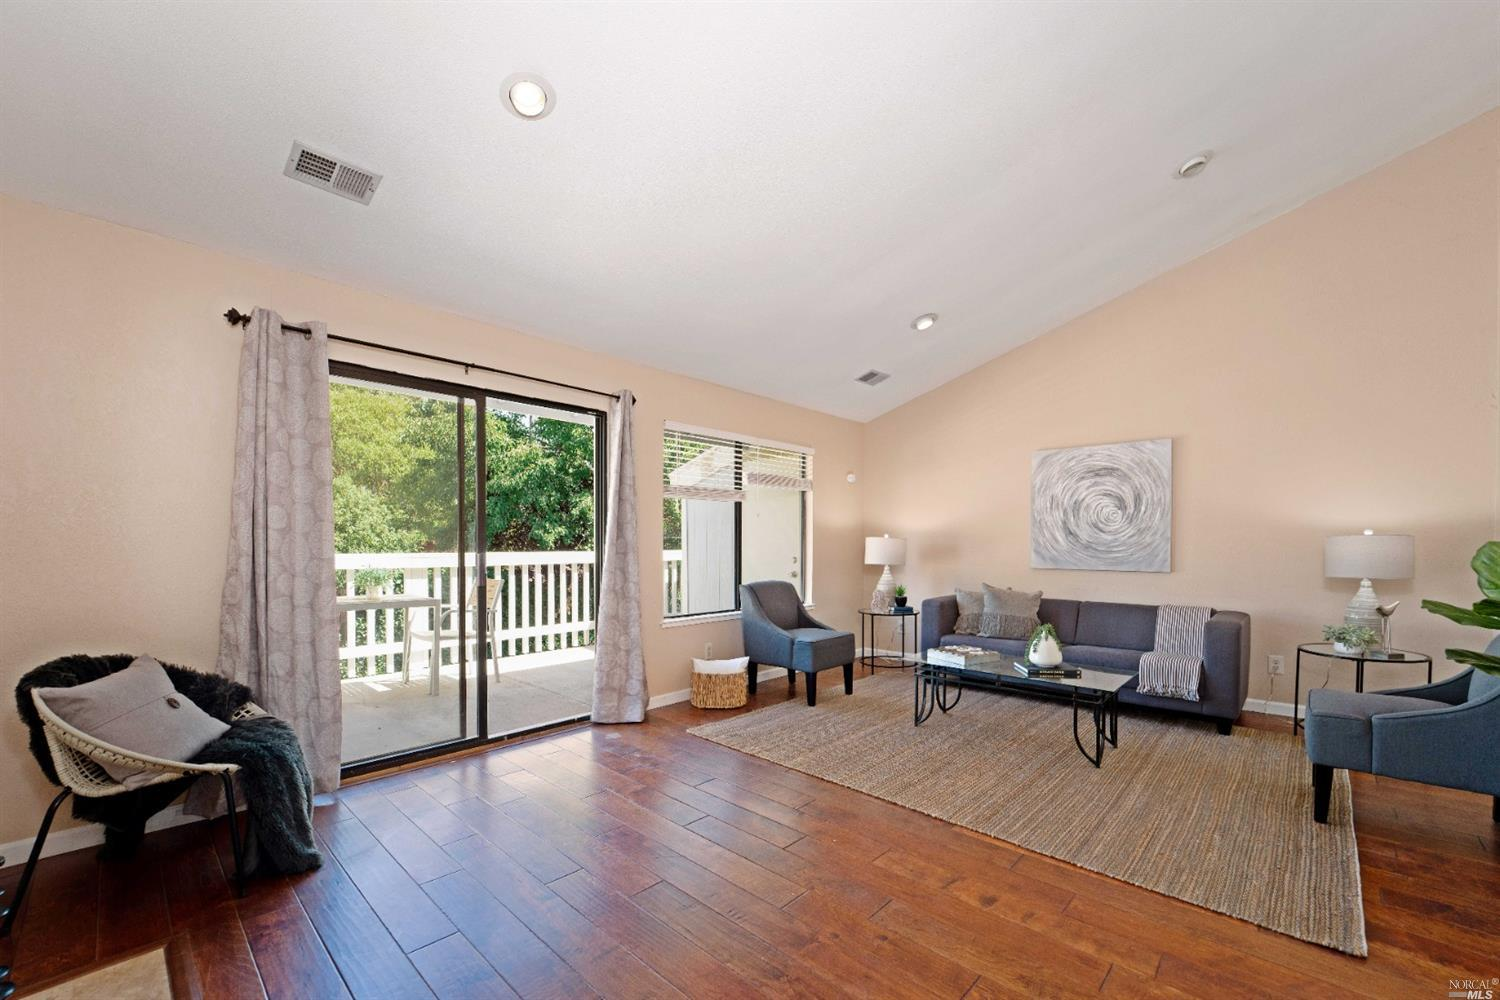 Super low HOA! Only $175/mo. This recently updated 2 bedroom, 1  bath condo features an open kitchen